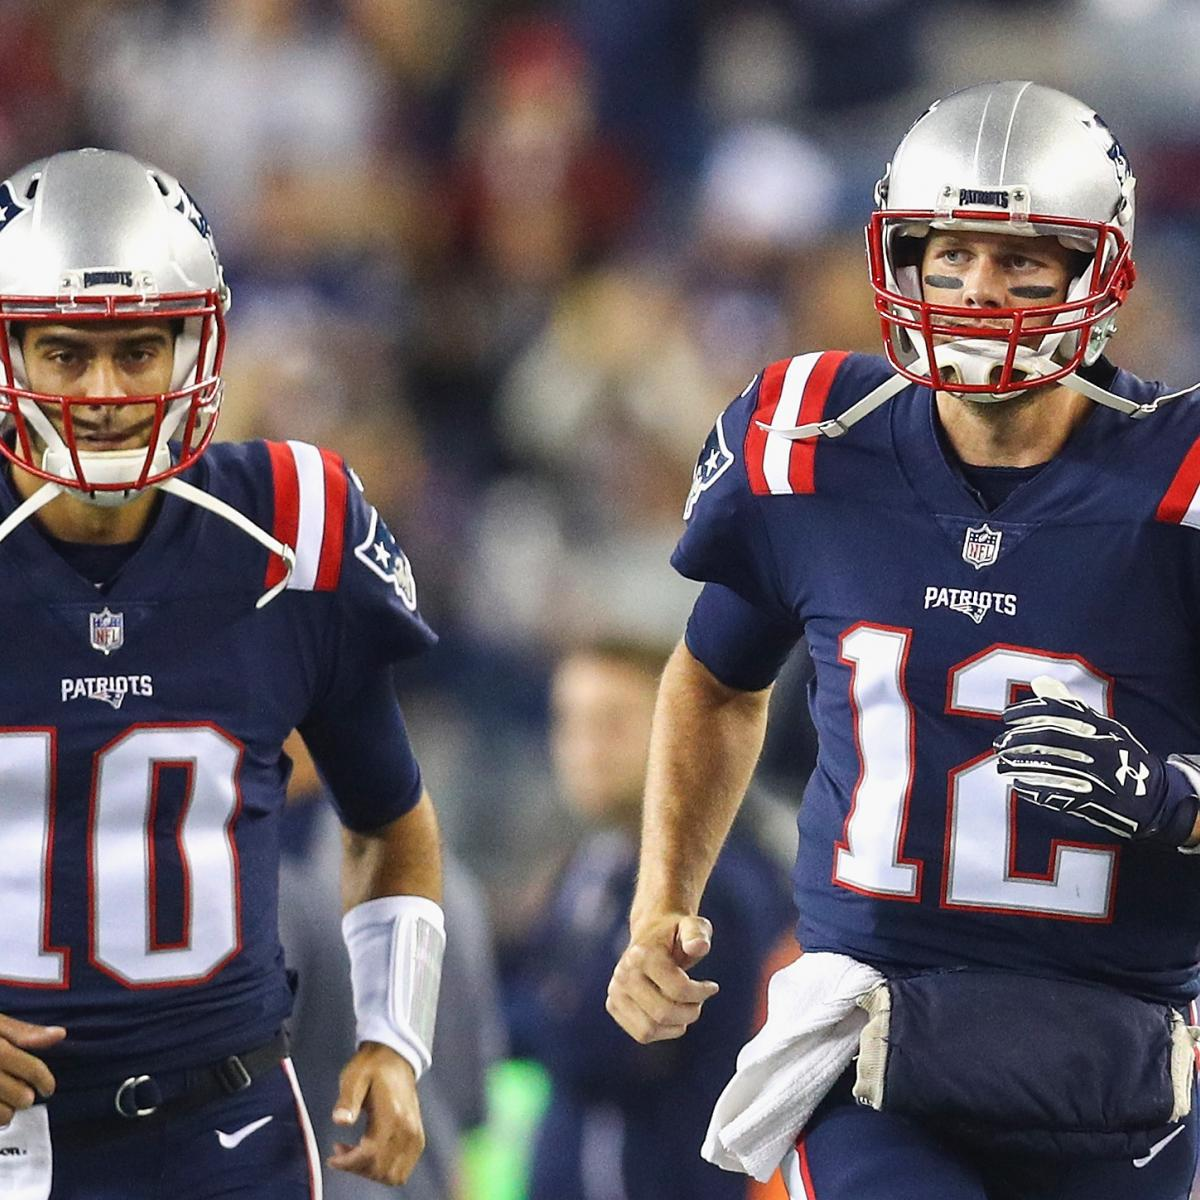 Jimmy Garoppolo and Tom Brady haven't been teammates for nearly two years, but the San Francisco 49ers quarterback is still learning from the future Hall of Famer...